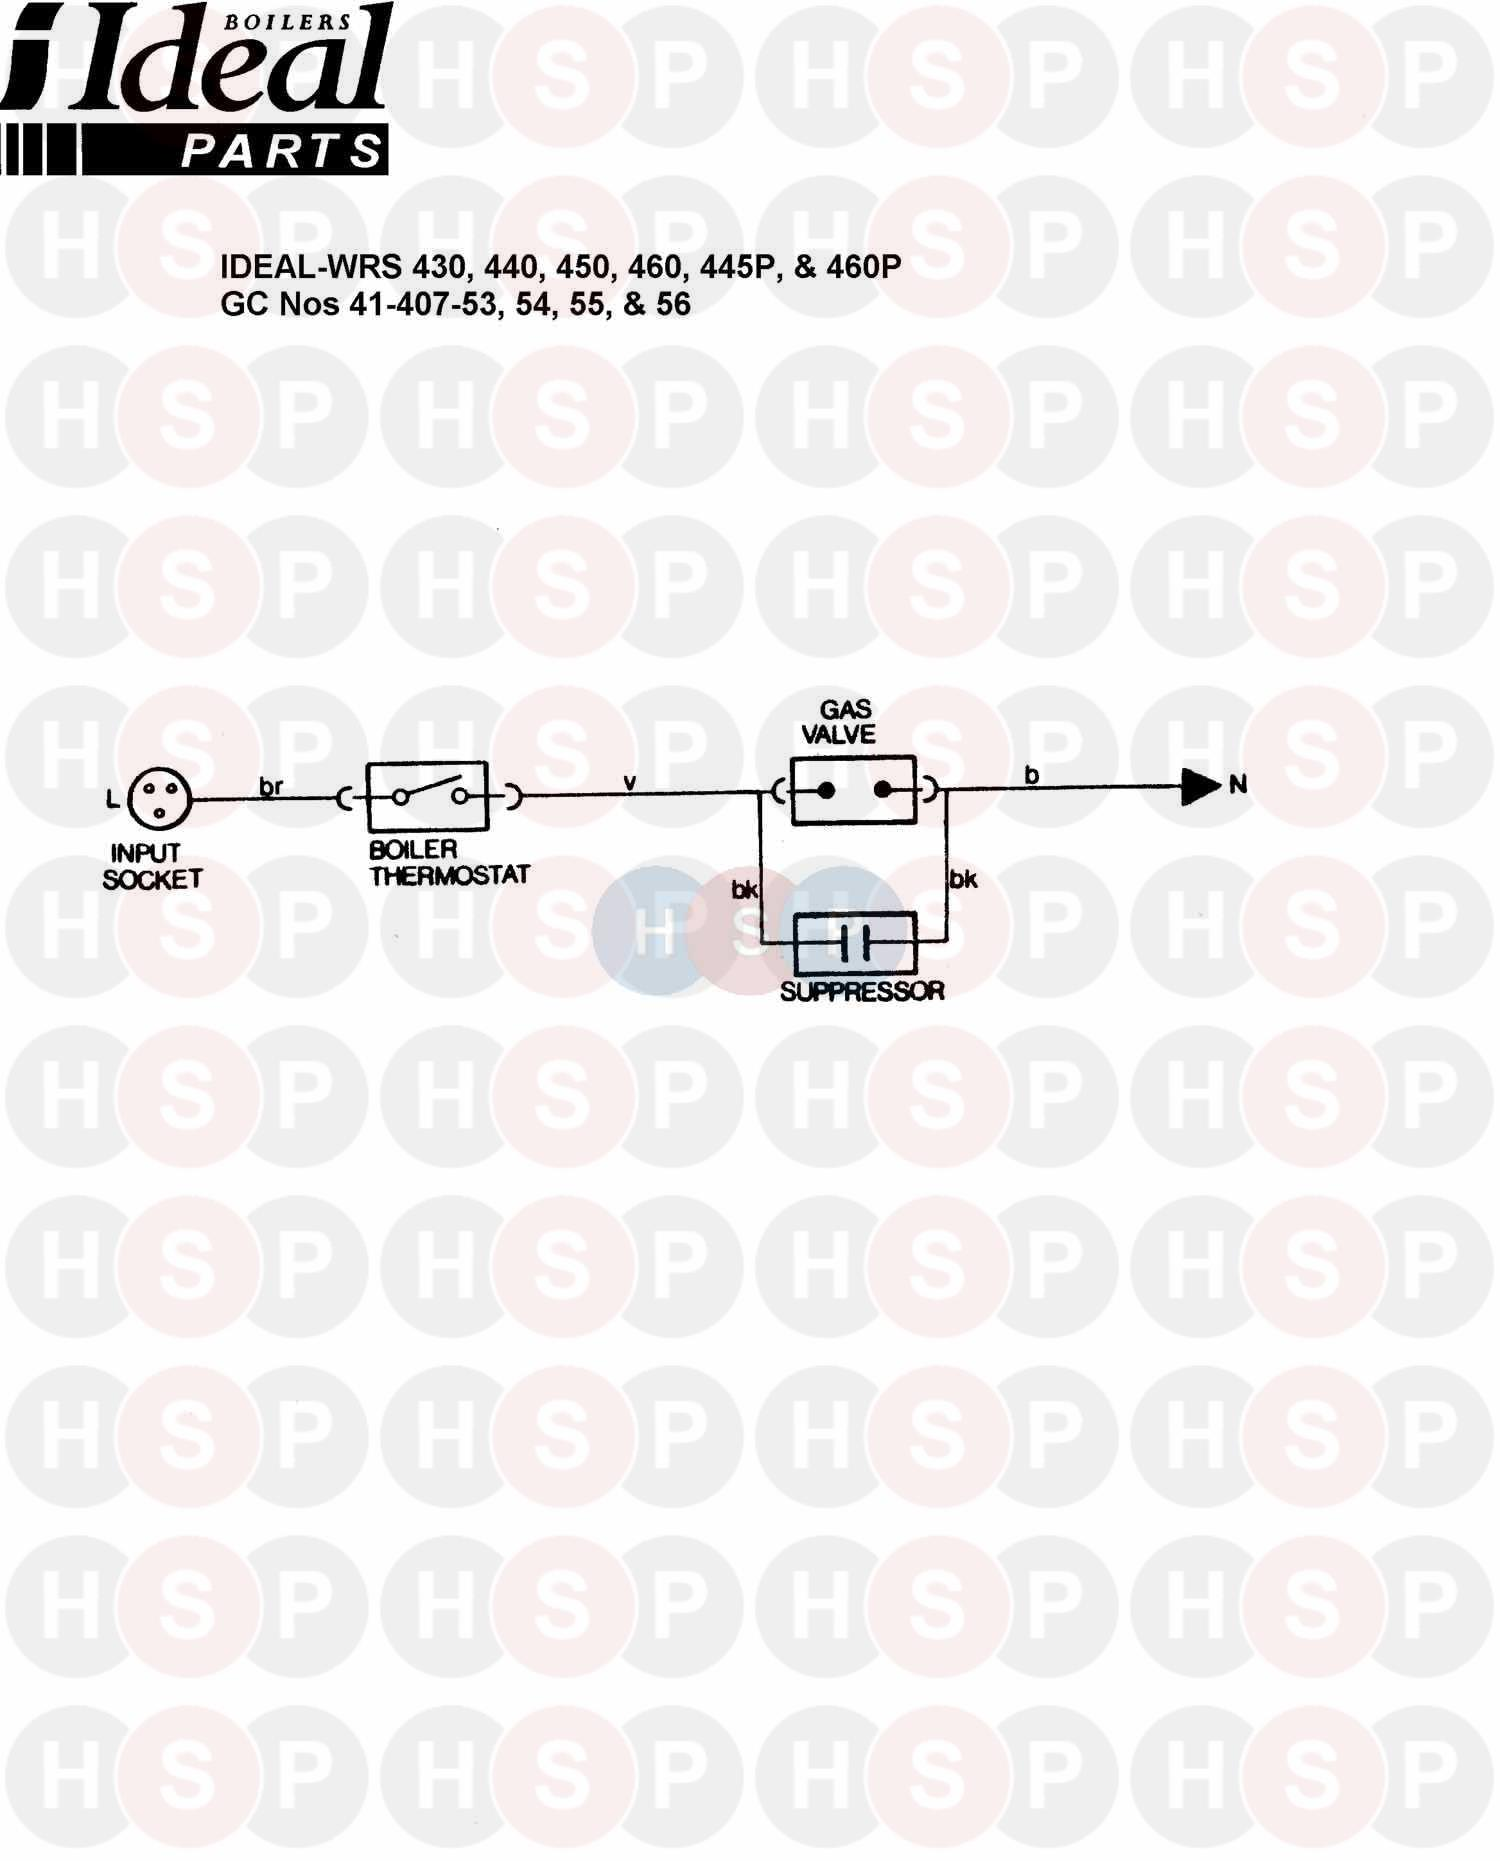 ideal concord wrs 450  wiring diagram 2  diagram